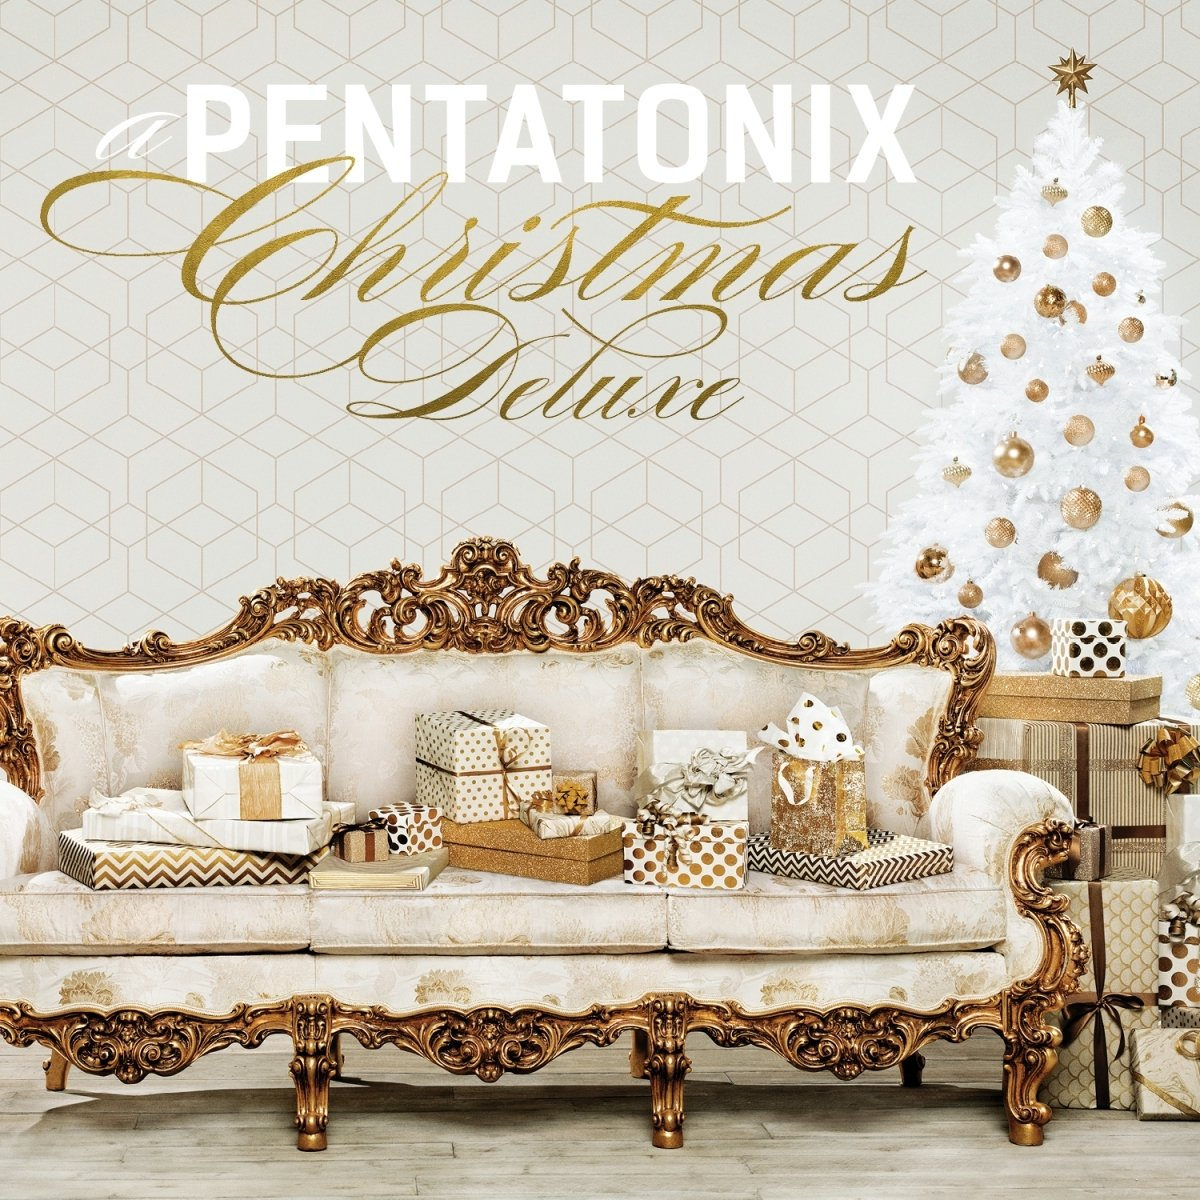 Pentatonix - A Pentatonix Christmas Deluxe - Amazon.com Music